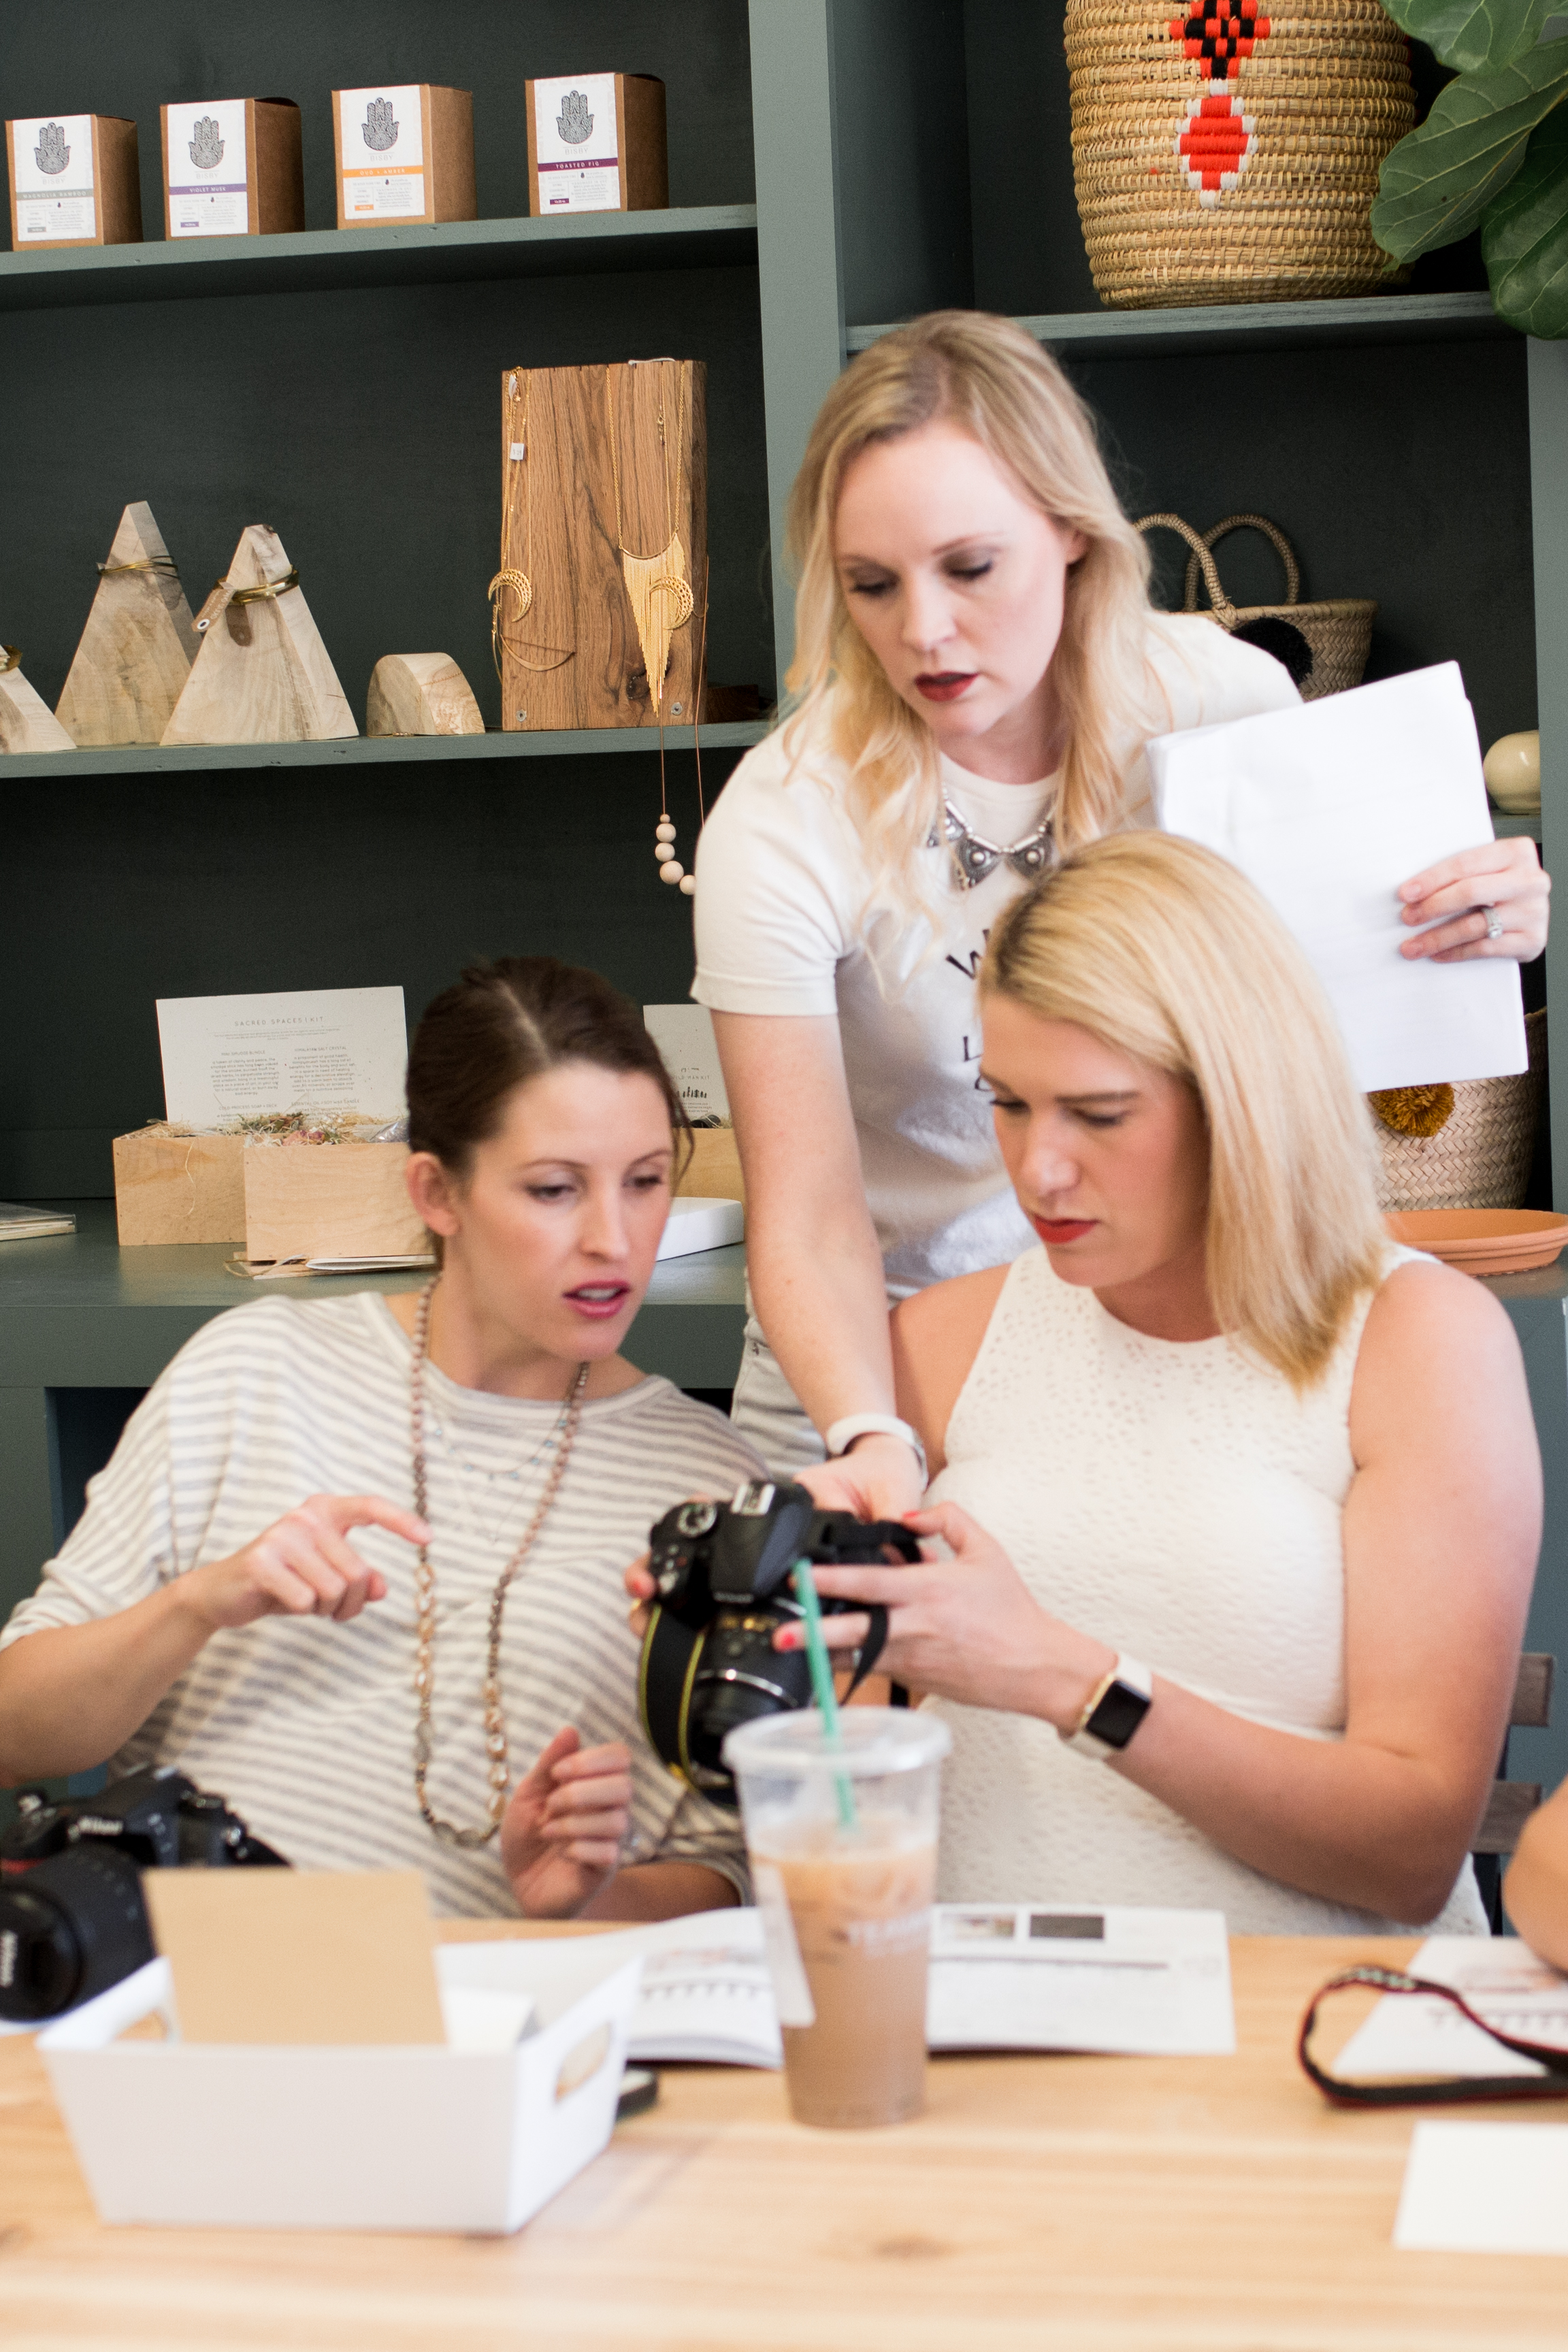 Angela helping moms with their DSLR cameras at  Kindred  Tulsa,Image by  Tina Lynn Photography